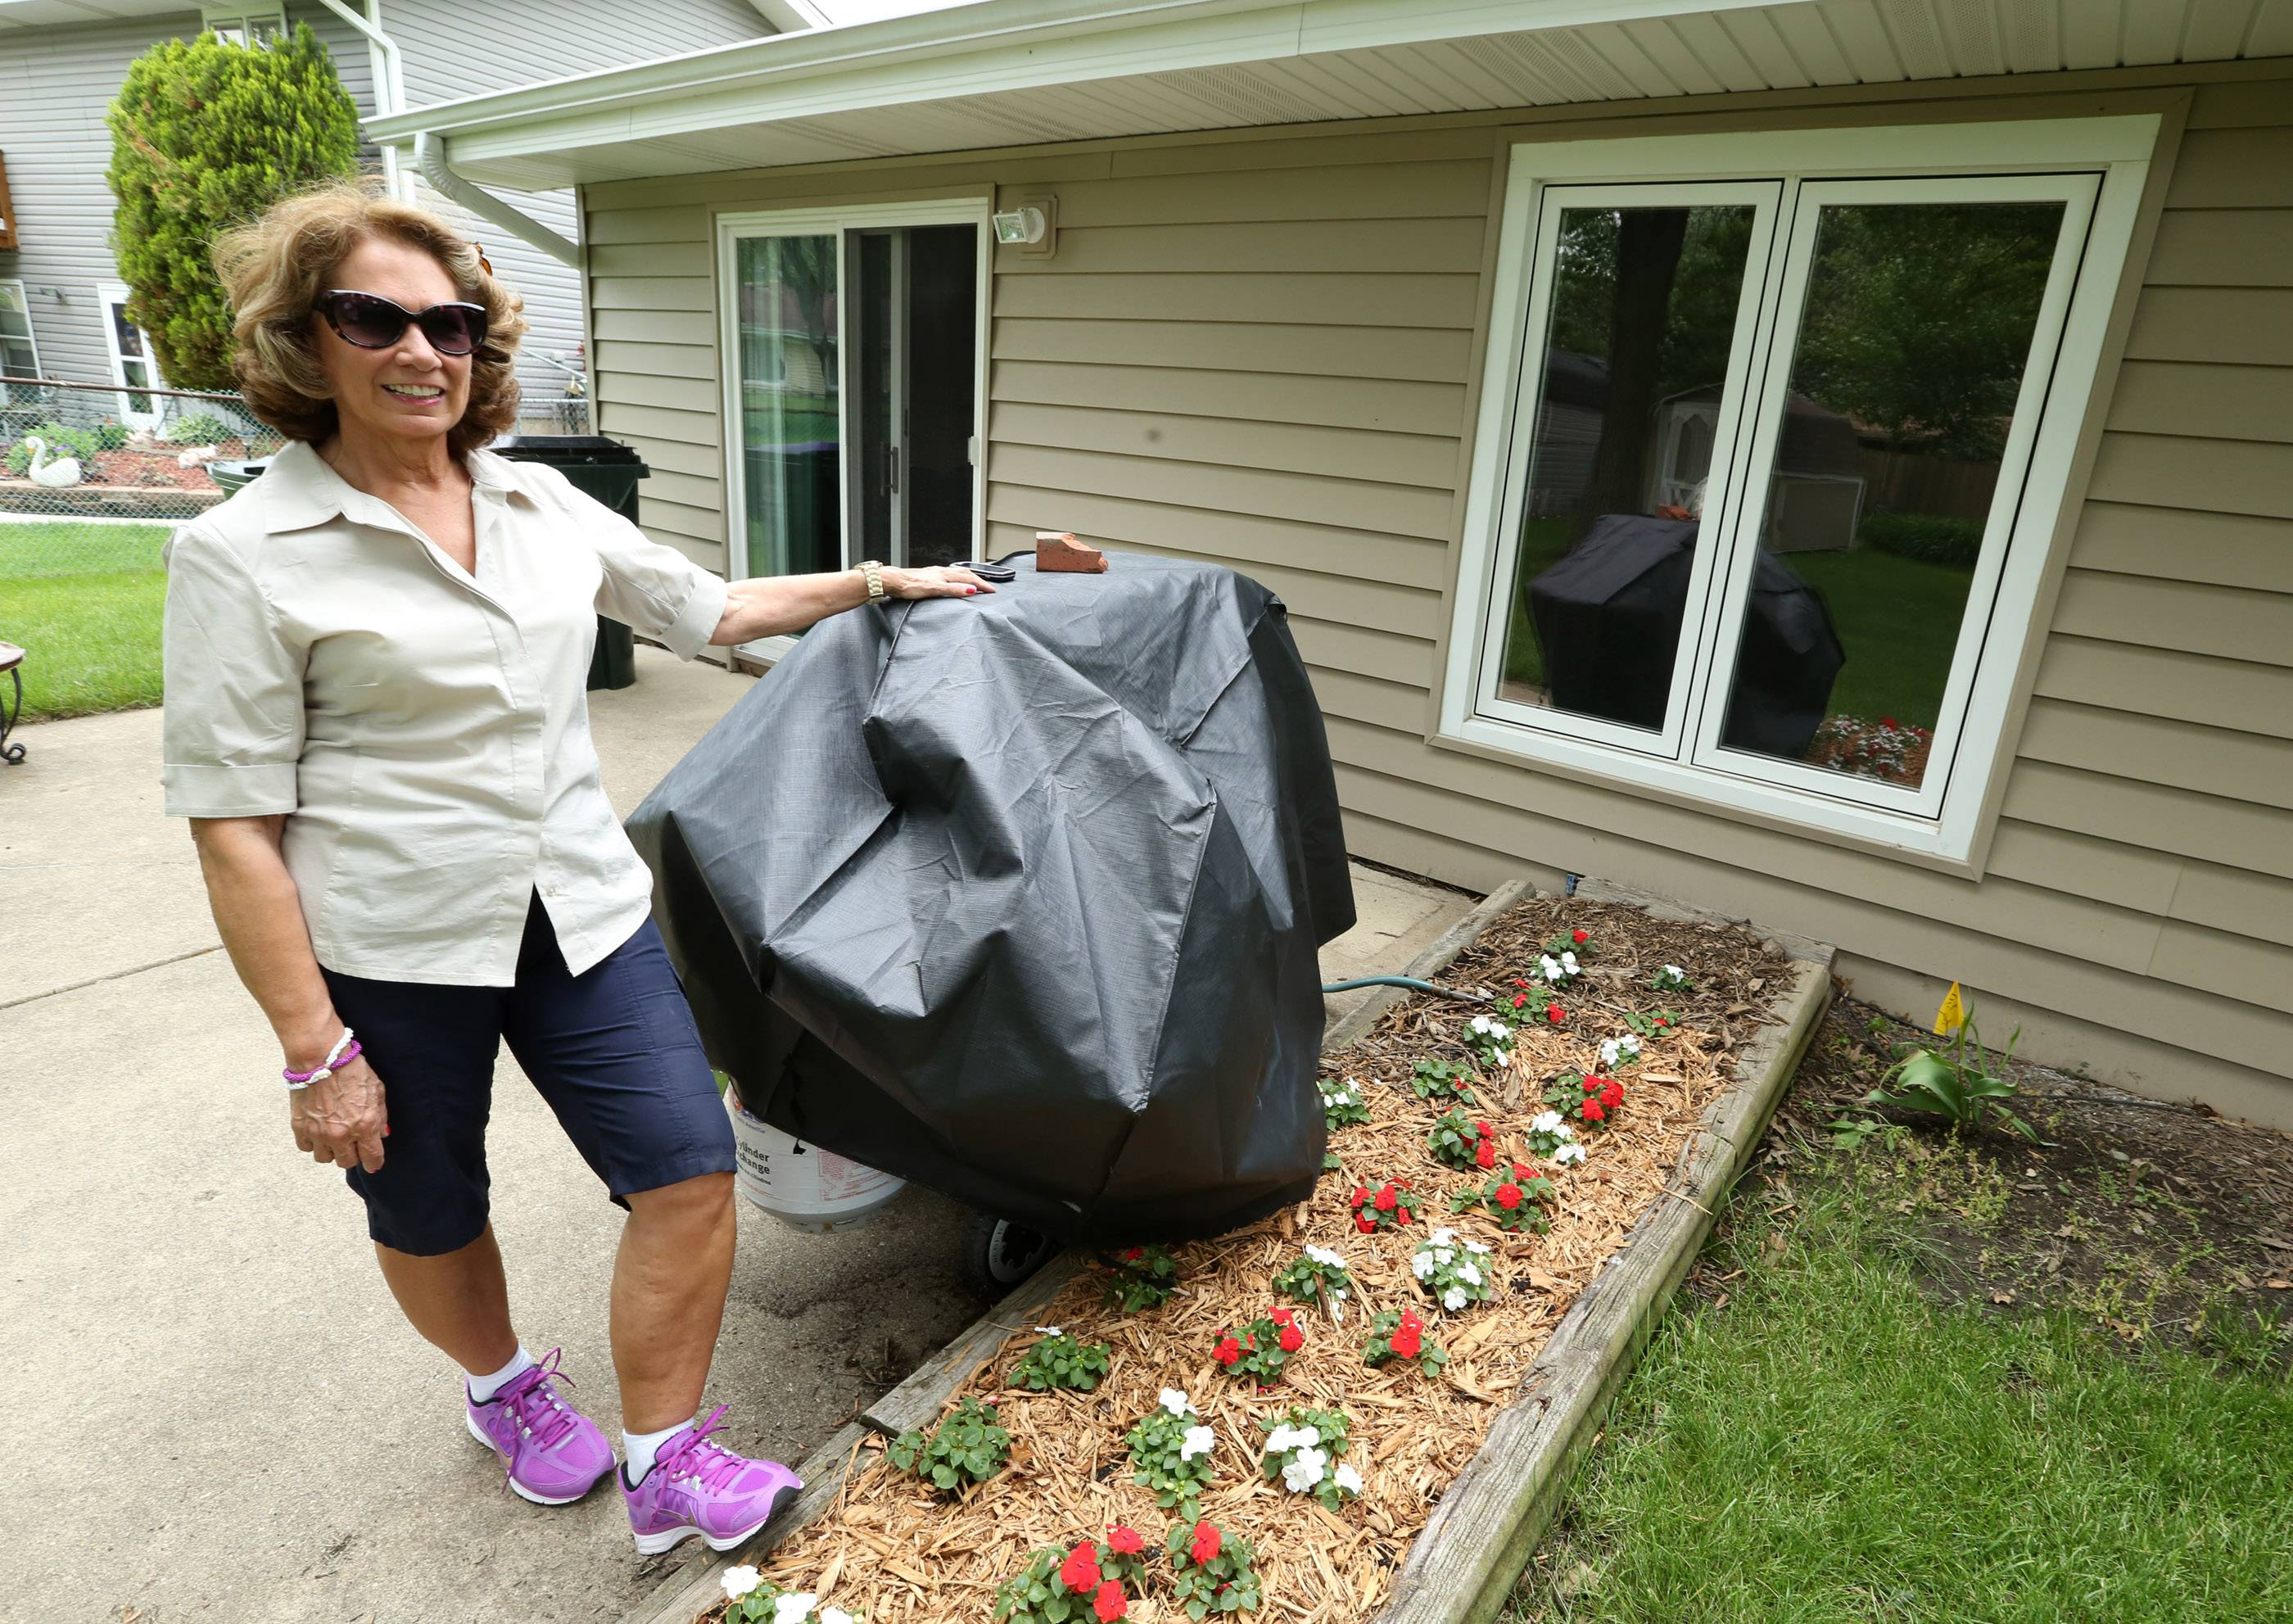 Nancy McCorvie of Hoffman Estates, winner of a GYSO prize package. McCorvie said she really looks forward to having her back porch area improved.